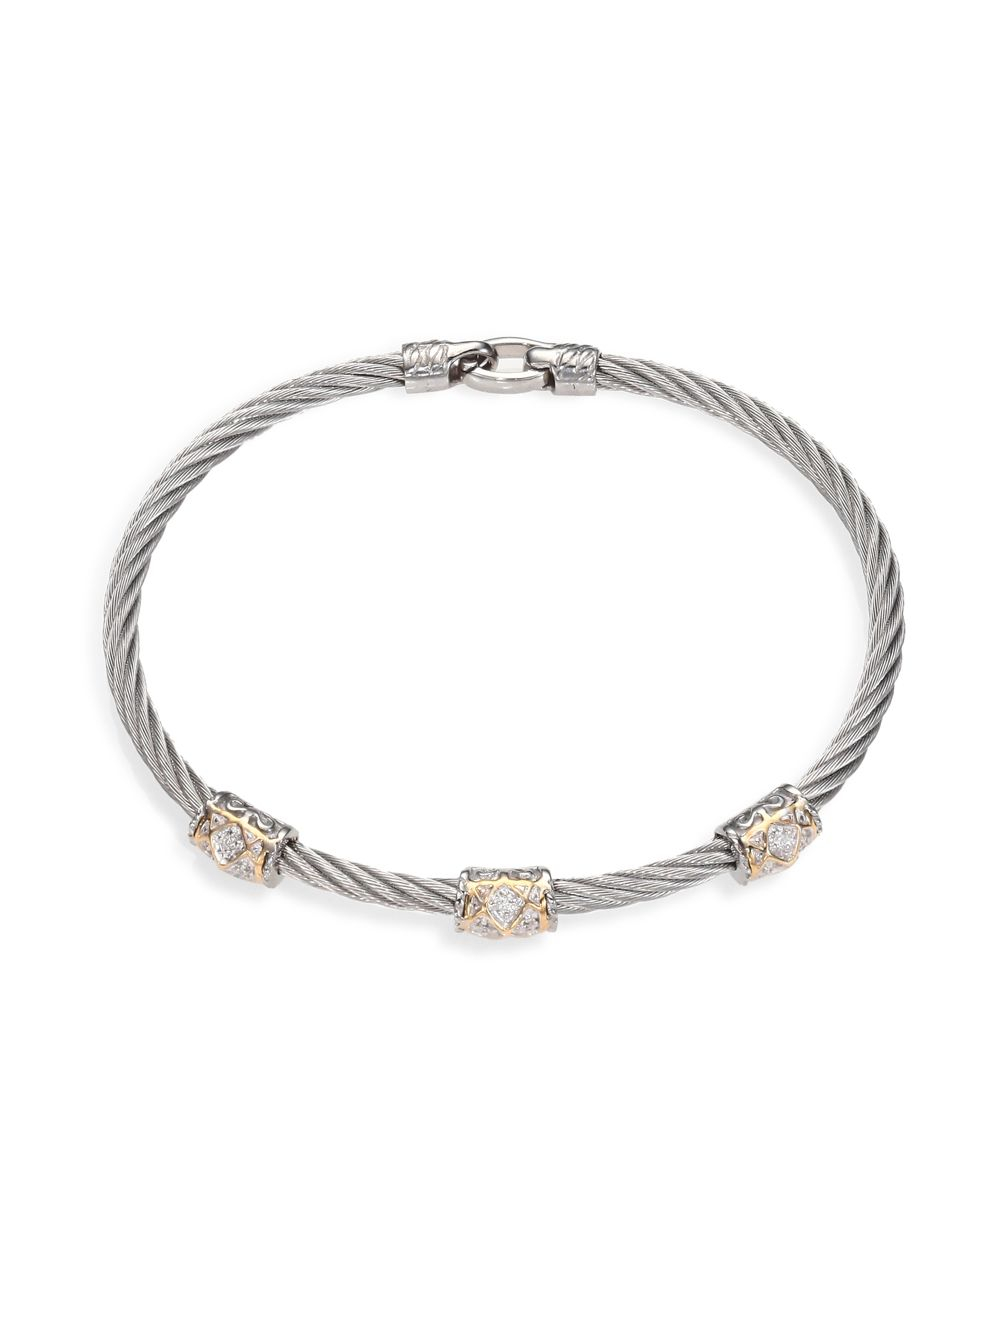 Charriol Diamond 18k Yellow Gold Stainless Steel Cable